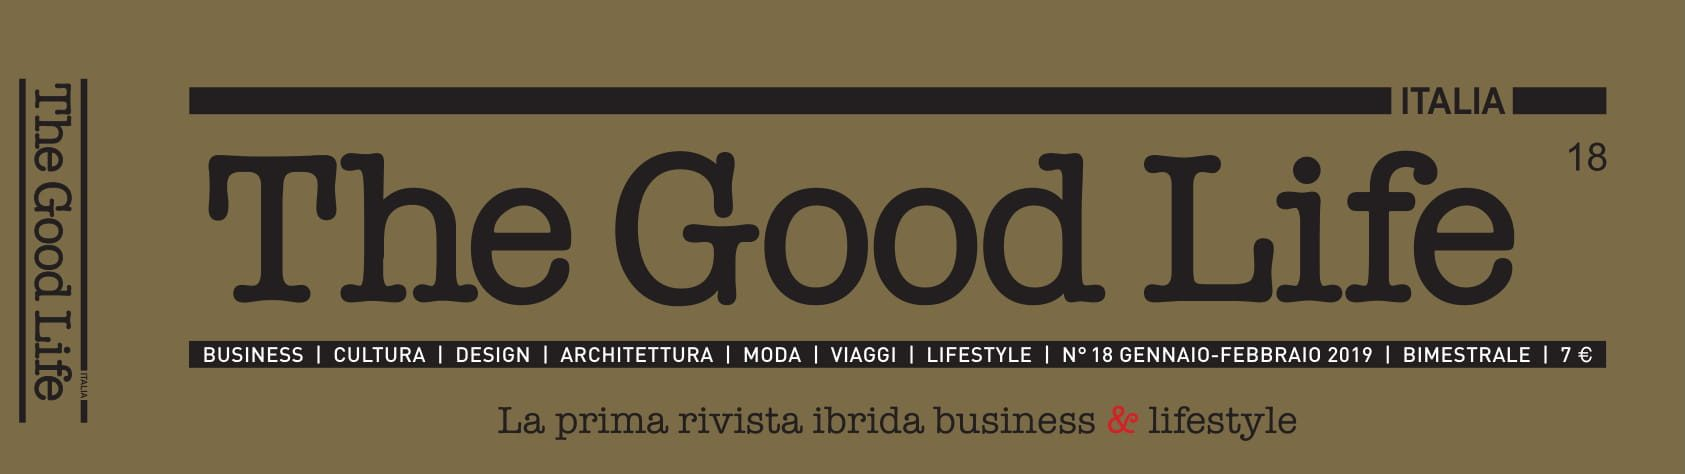 Il futuro è già presente – Fashion Tech, The Good Life